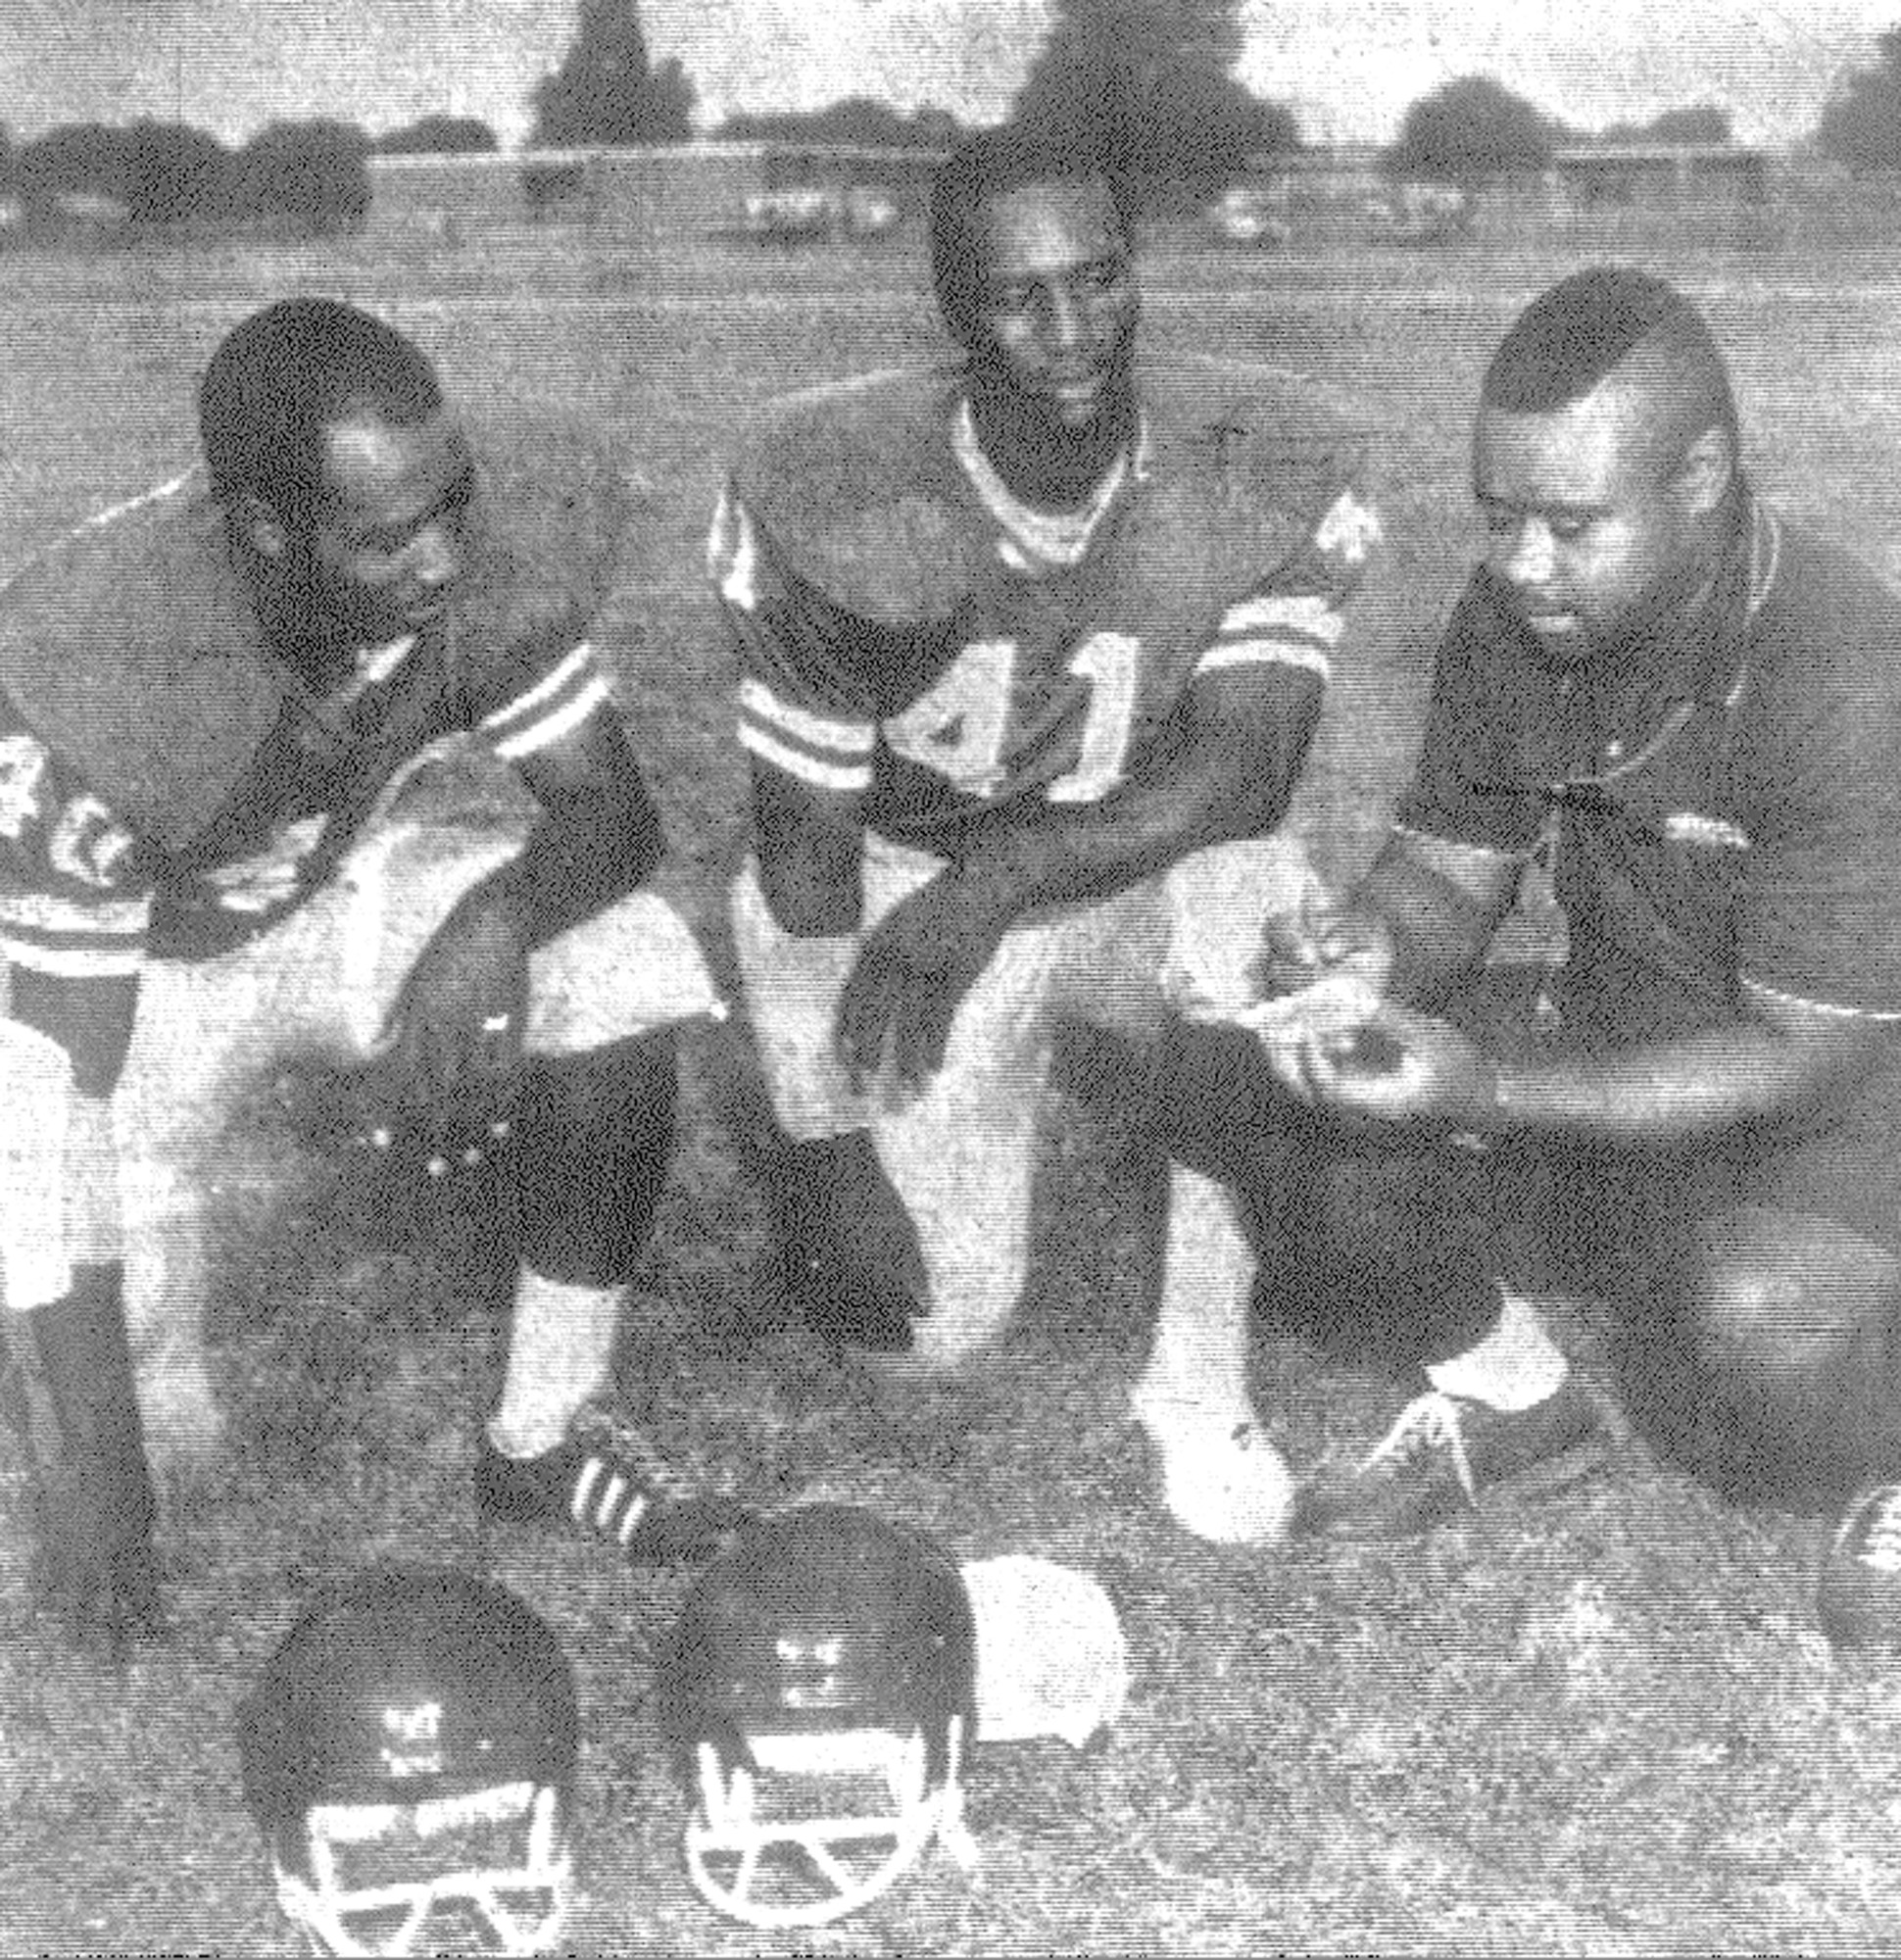 1968 - Lincoln High School Coach Joe Hoskins, right, talks with John Haynesworth, left, and Oliver Wells about a game with Manning.